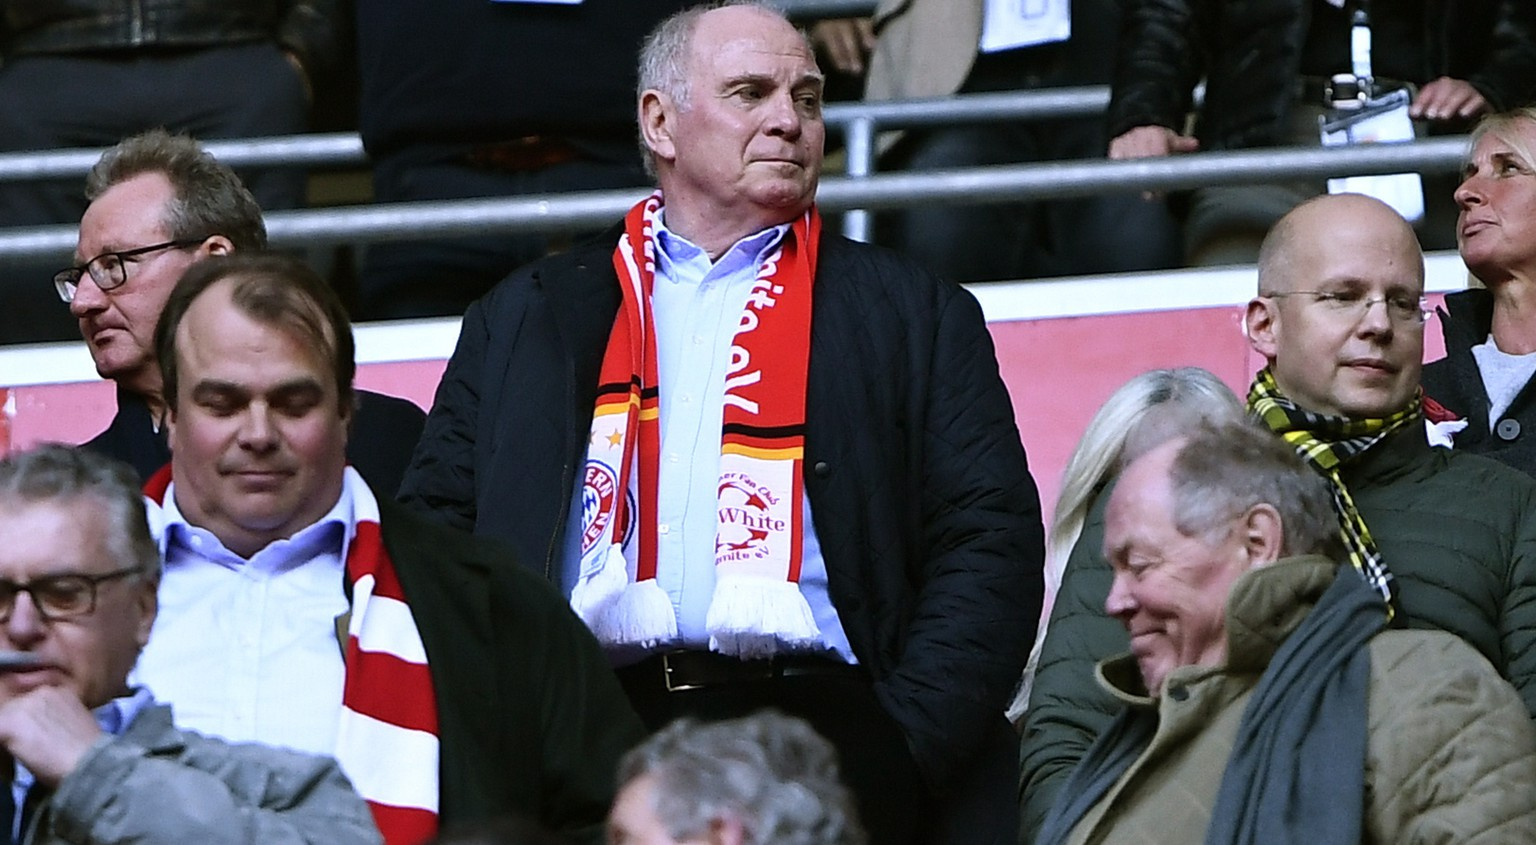 epa07488867 Bayern Munich President Uli Hoeness attends the German Bundesliga soccer match between FC Bayern Munich and Borussia Dortmund in Munich, Germany, 06 April 2019.  EPA/LUKAS BARTH-TUTTAS CONDITIONS - ATTENTION: DFL regulations prohibit any use of photographs as image sequences and/or quasi-video.